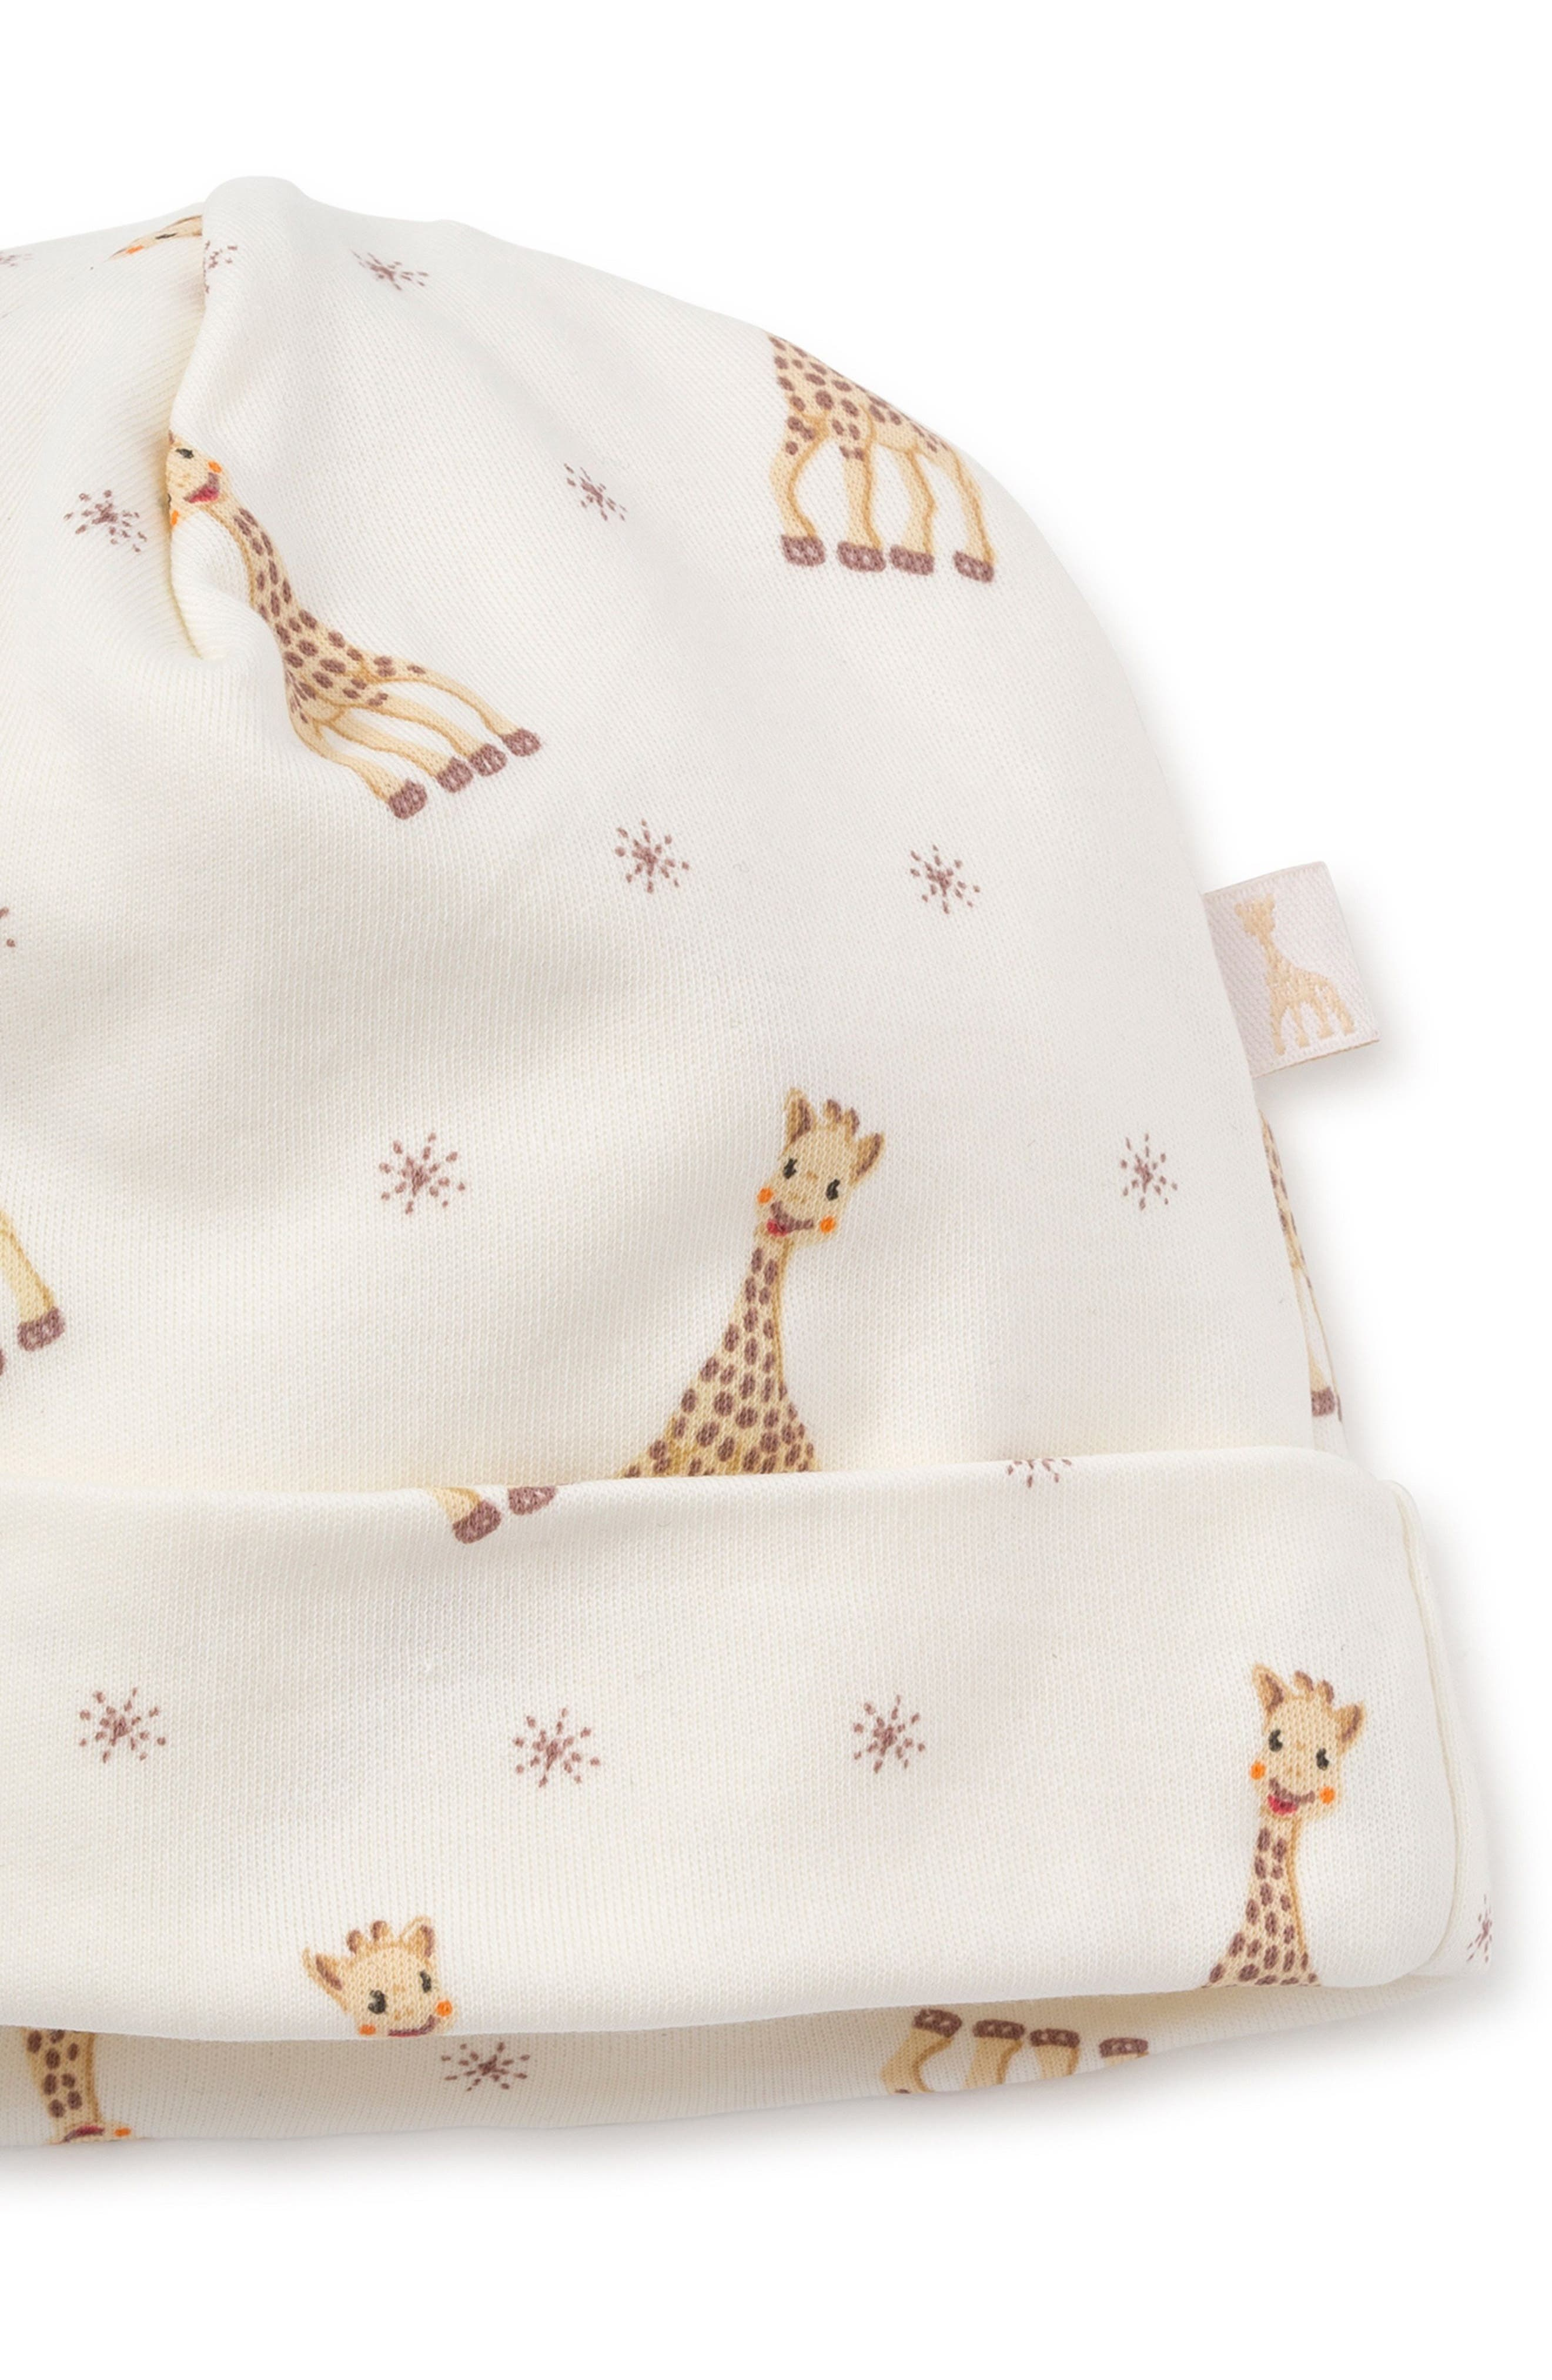 x Sophie la Girafe Beanie Hat,                             Alternate thumbnail 2, color,                             Ecru